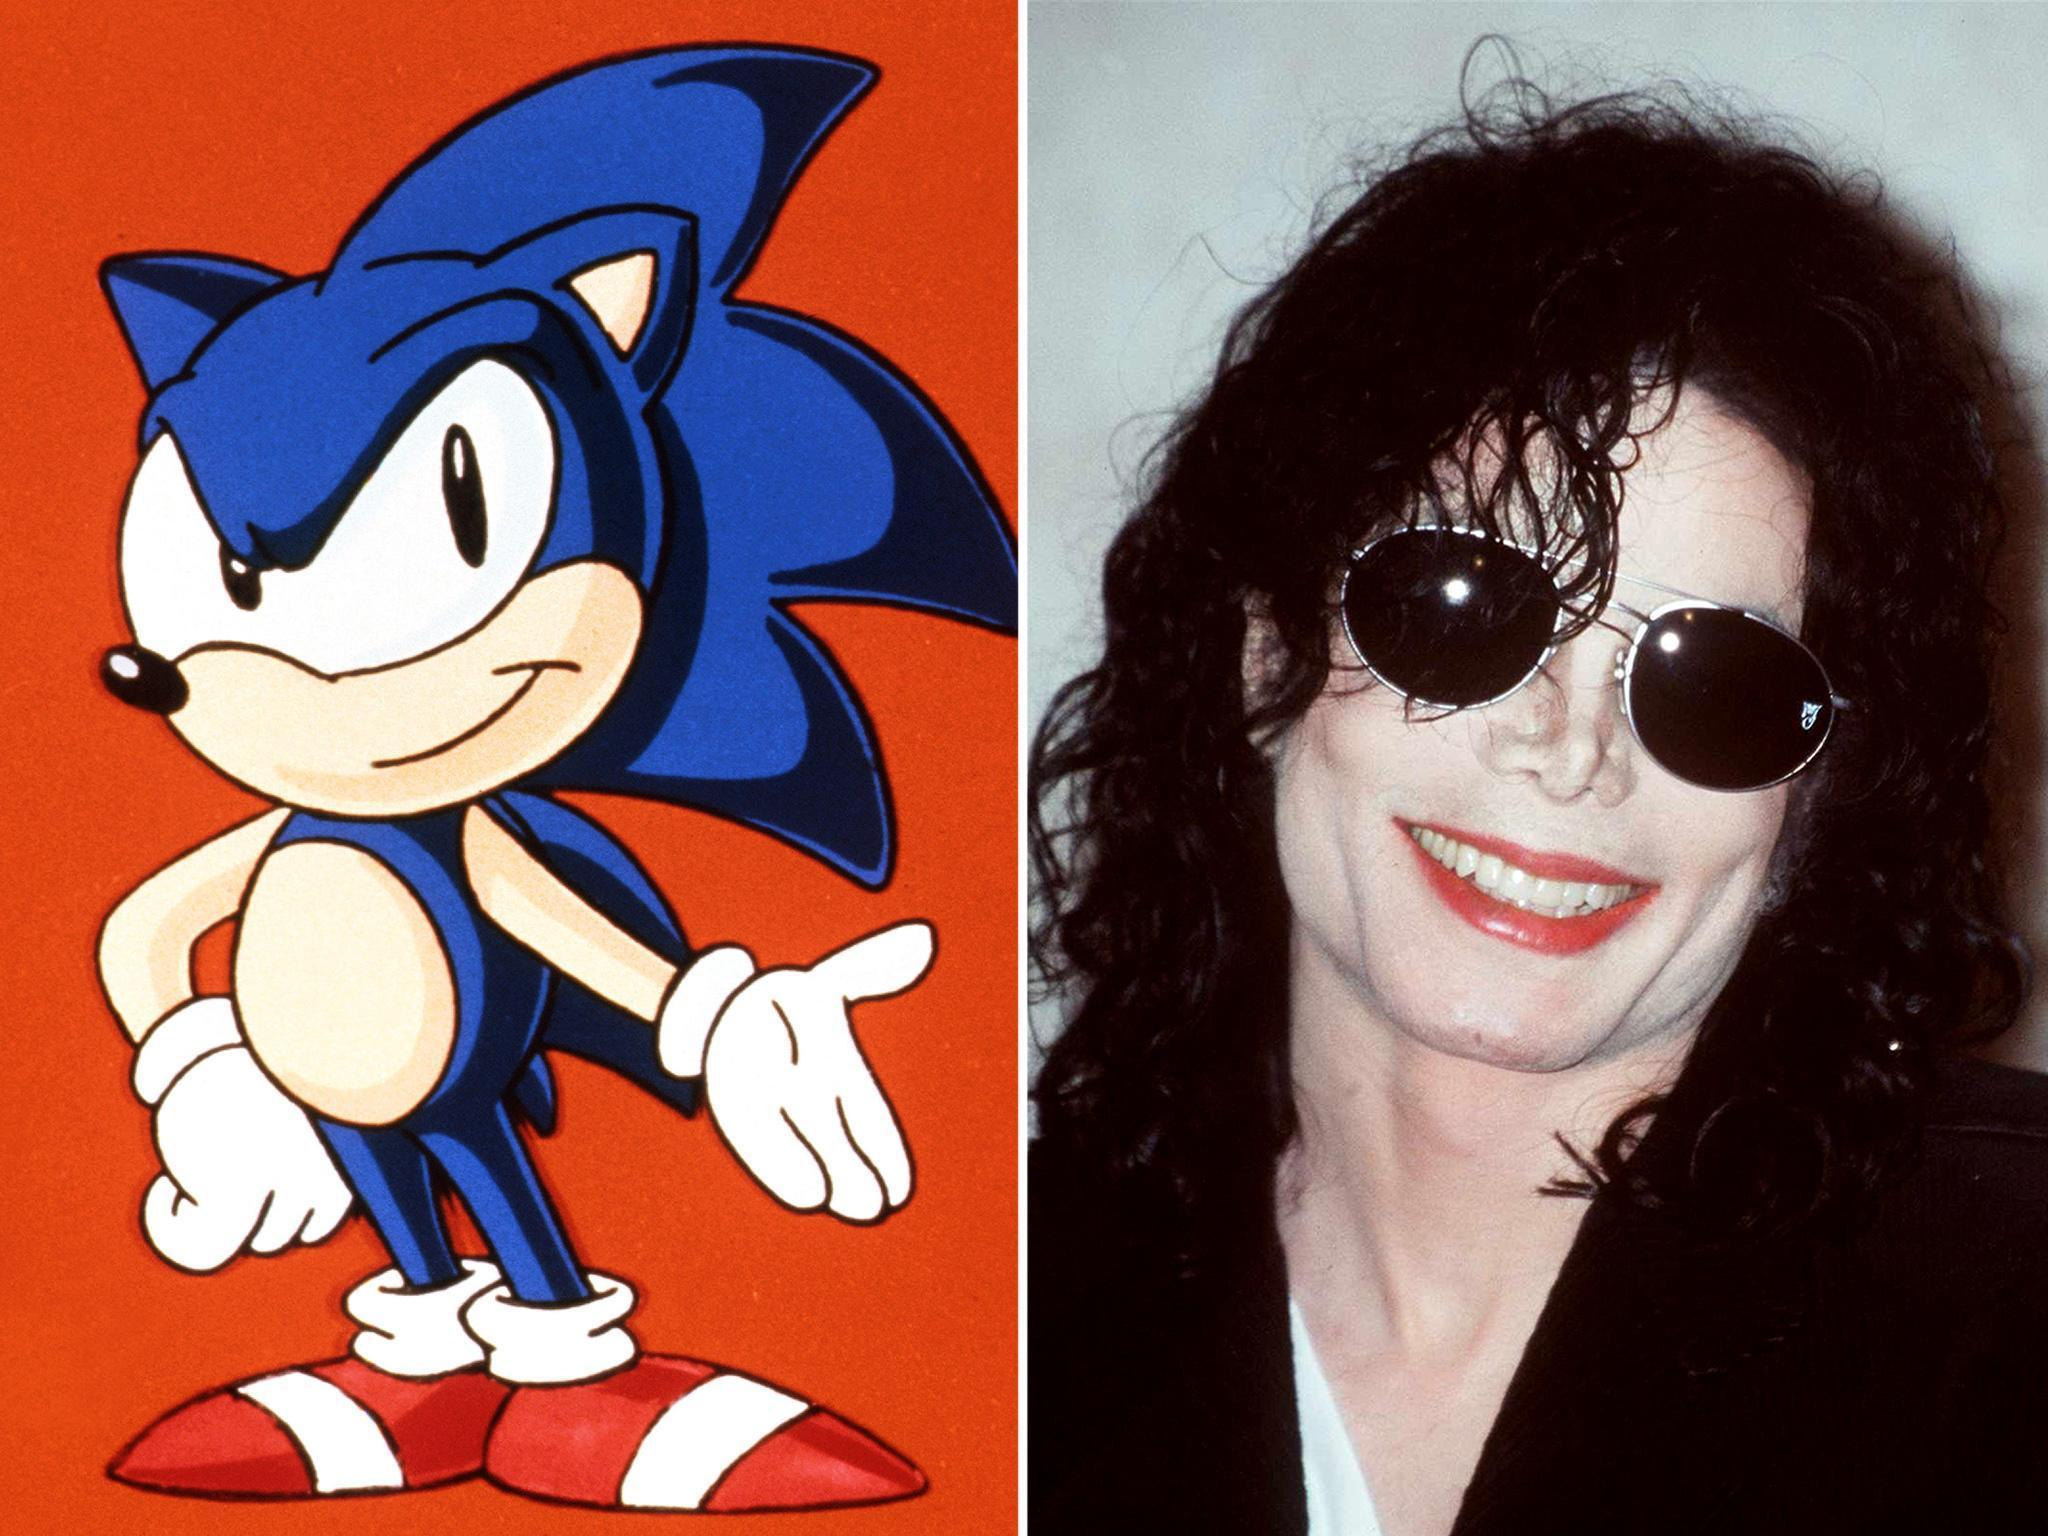 Michael Jackson Probably Wrote The Music For Sonic The Hedgehog